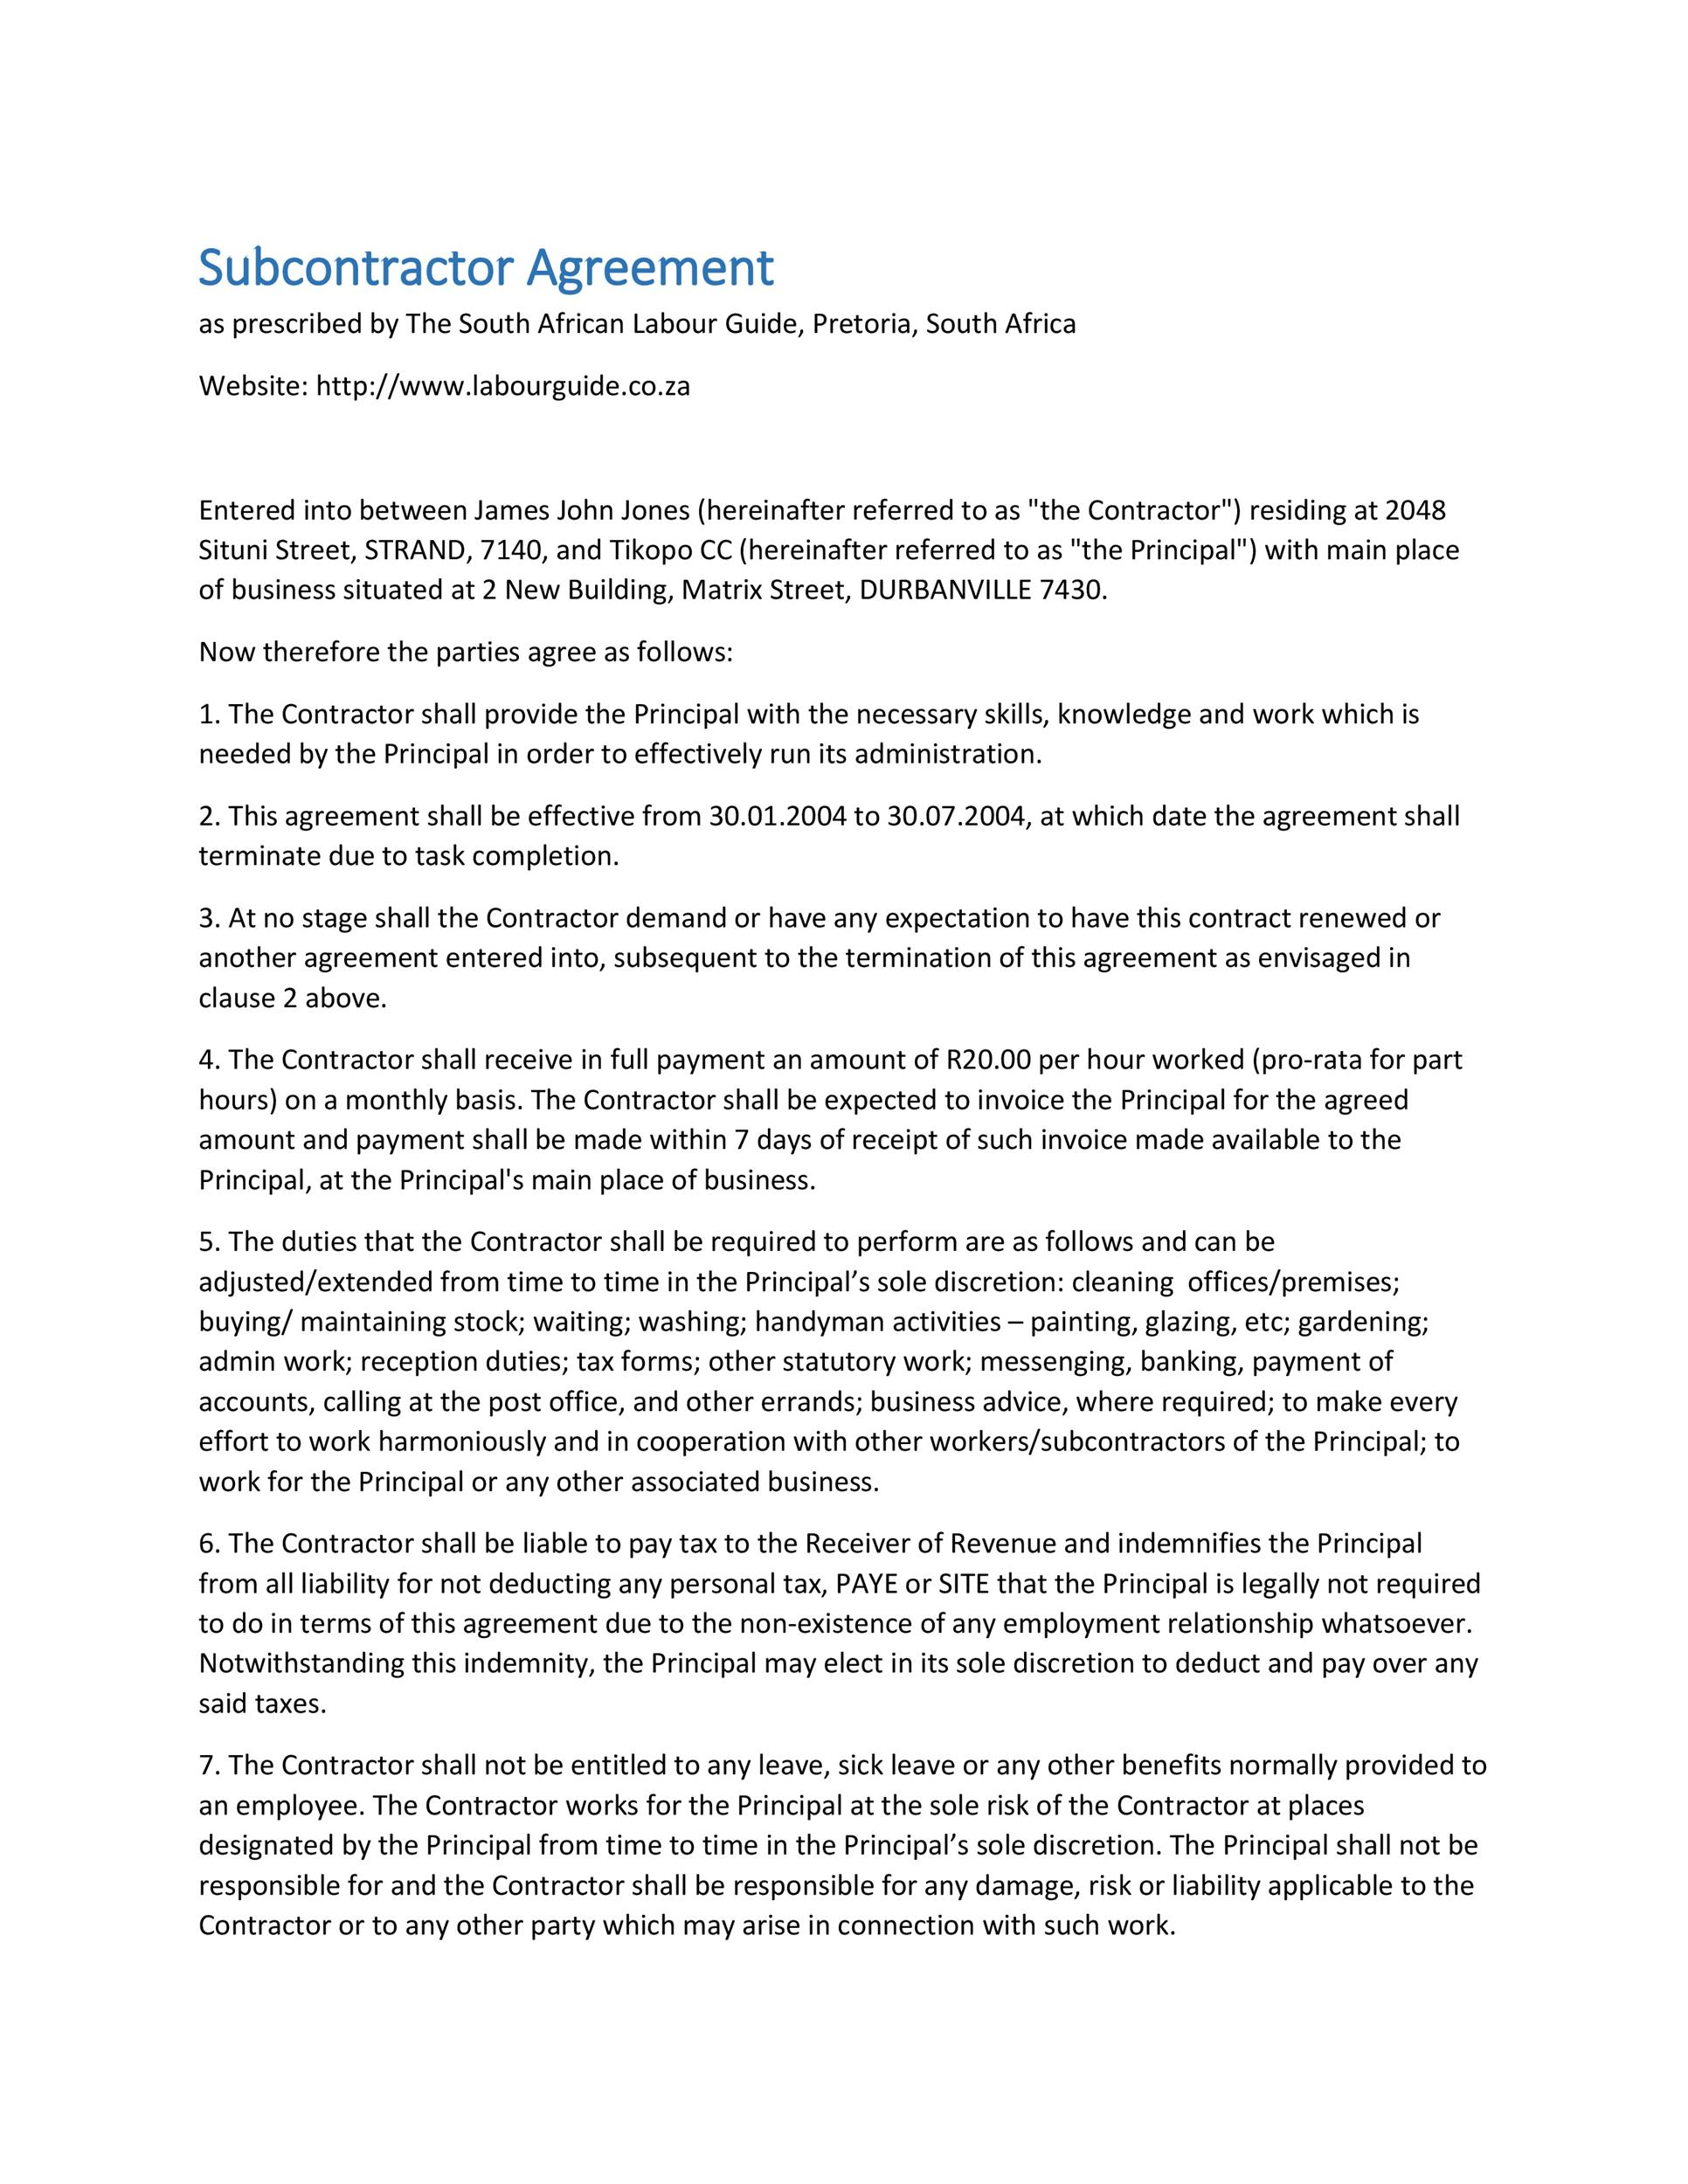 Payment Agreement Contract Subcontractor Agreement 10 Need A - sample subcontractor agreement